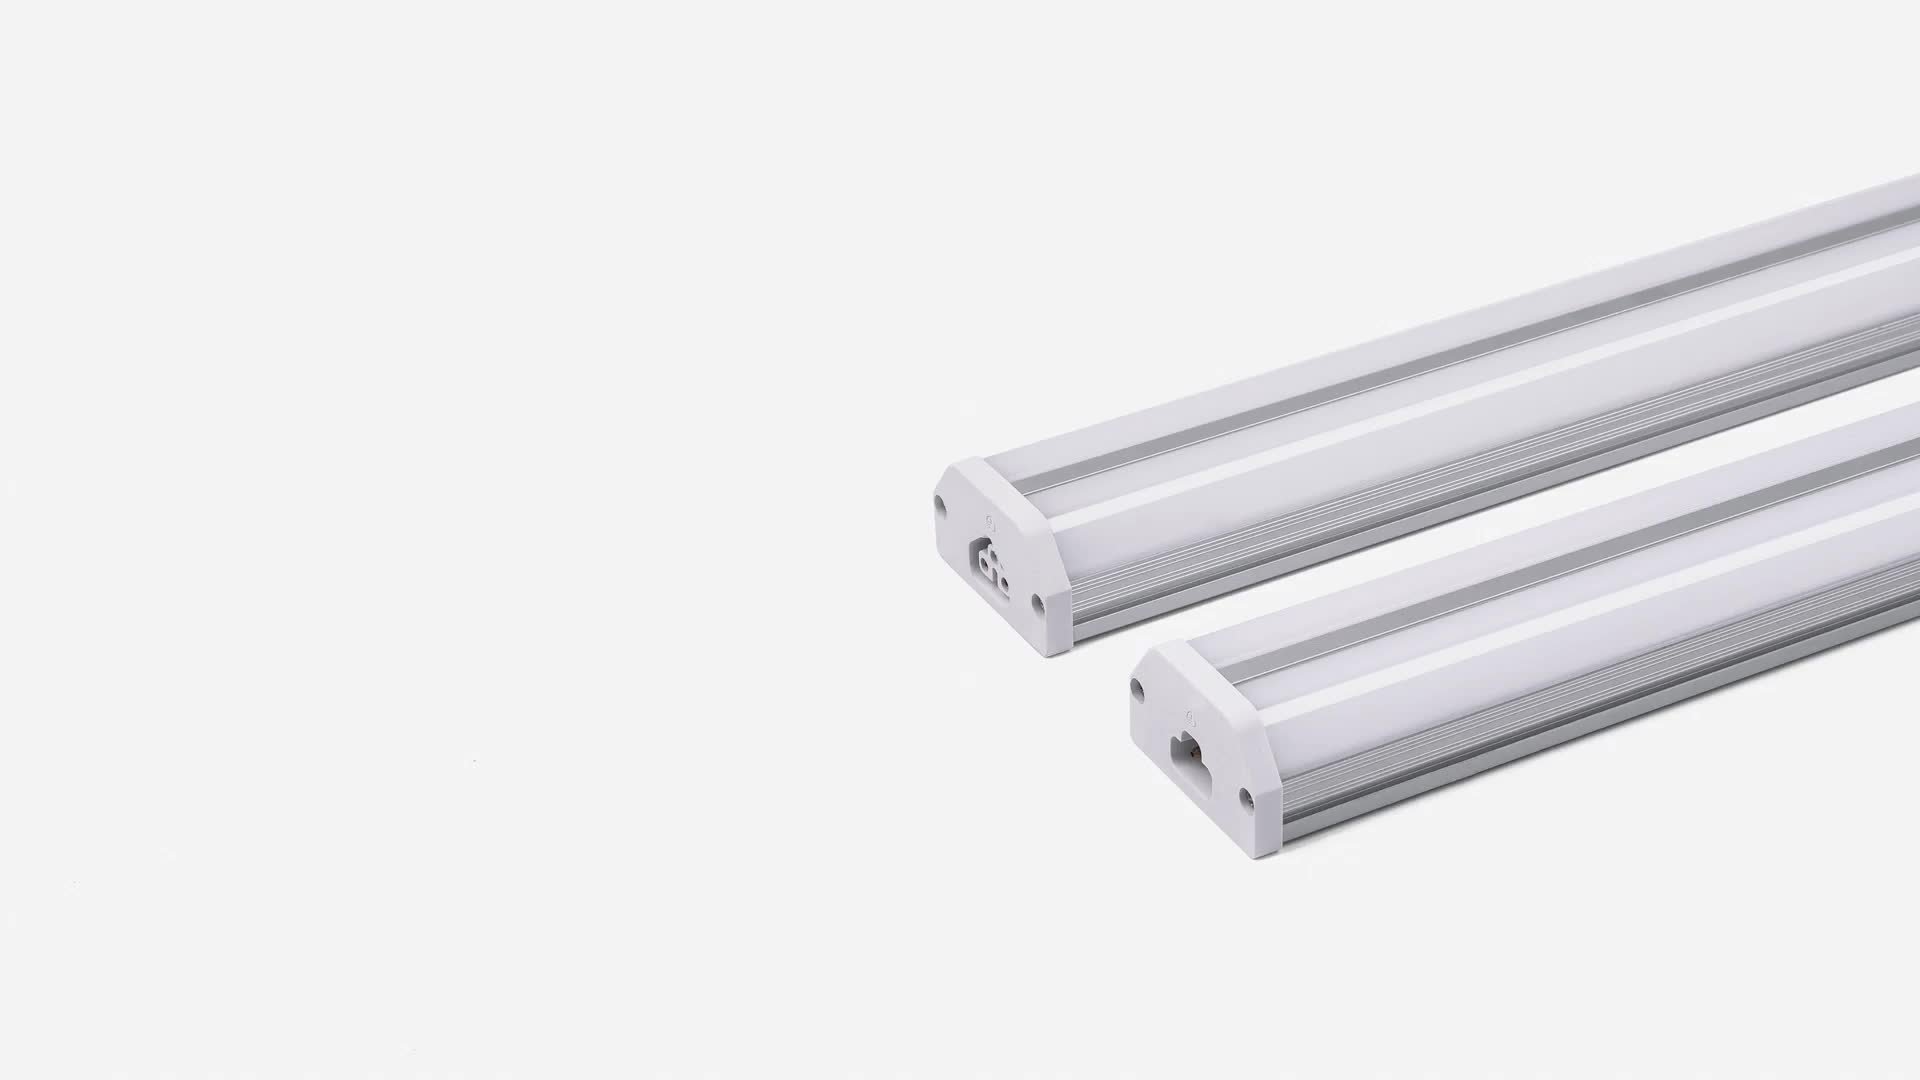 microwave sensor led tube lighting Double Tubes with Dimmable/CCT adjust/on off switch 3000-6500K white for shop office fixture